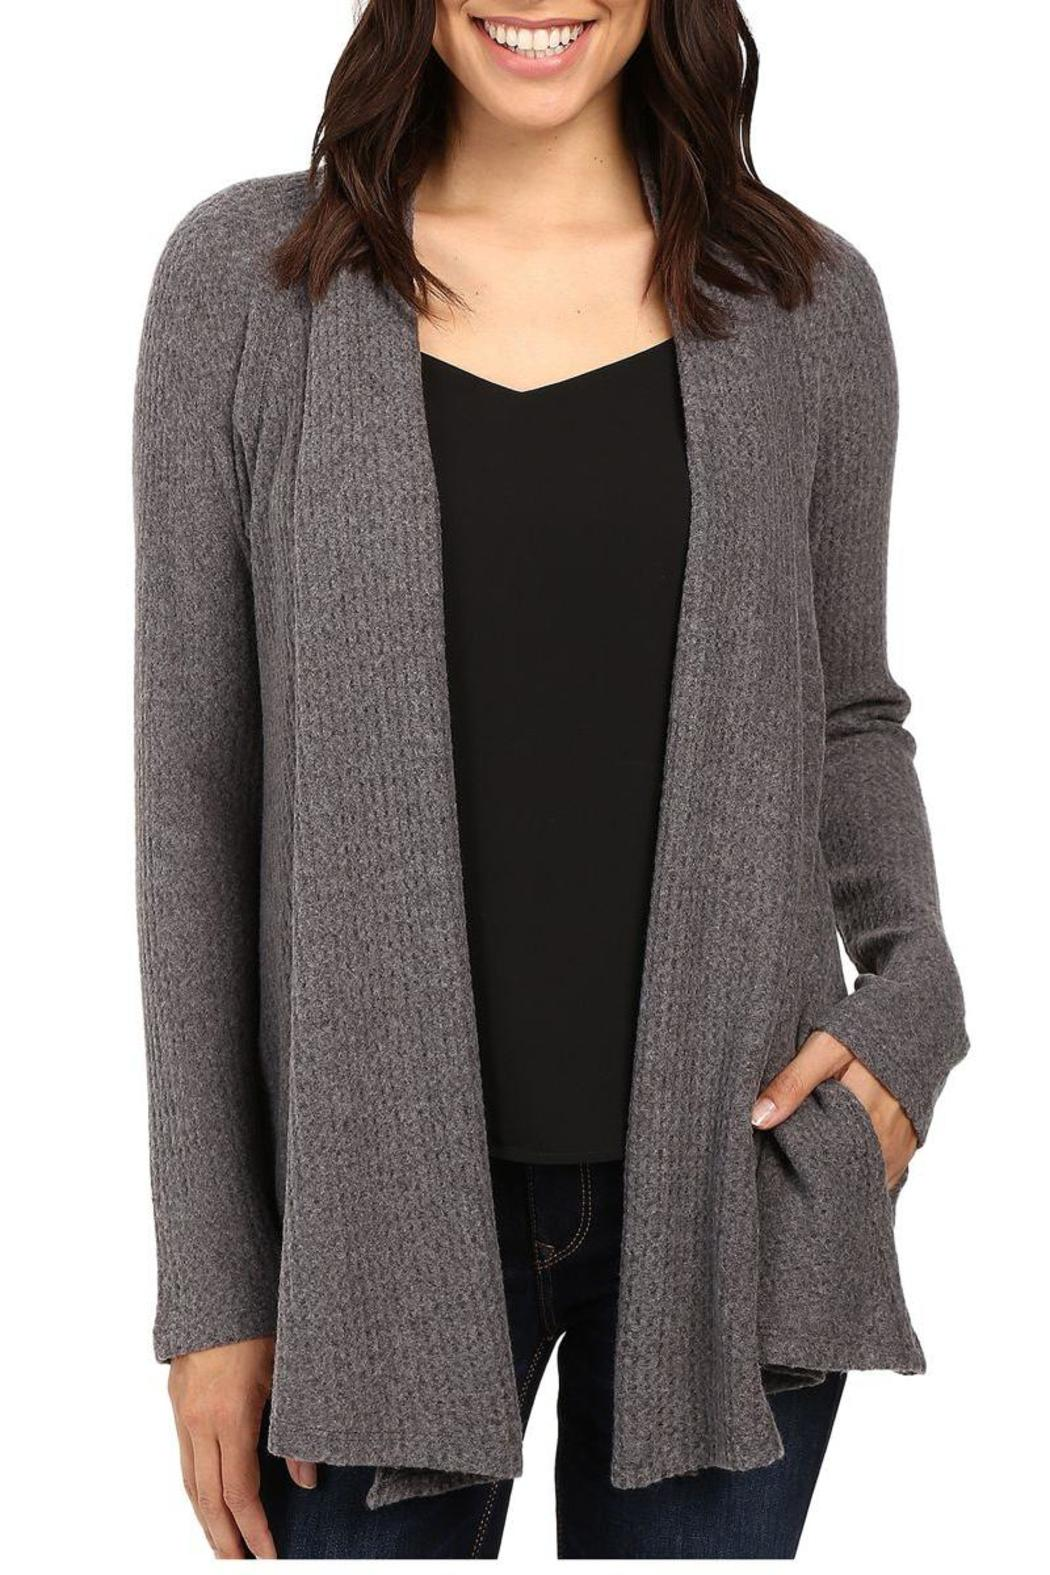 The Dressing Room Soft Knit Cardigan - Front Cropped Image